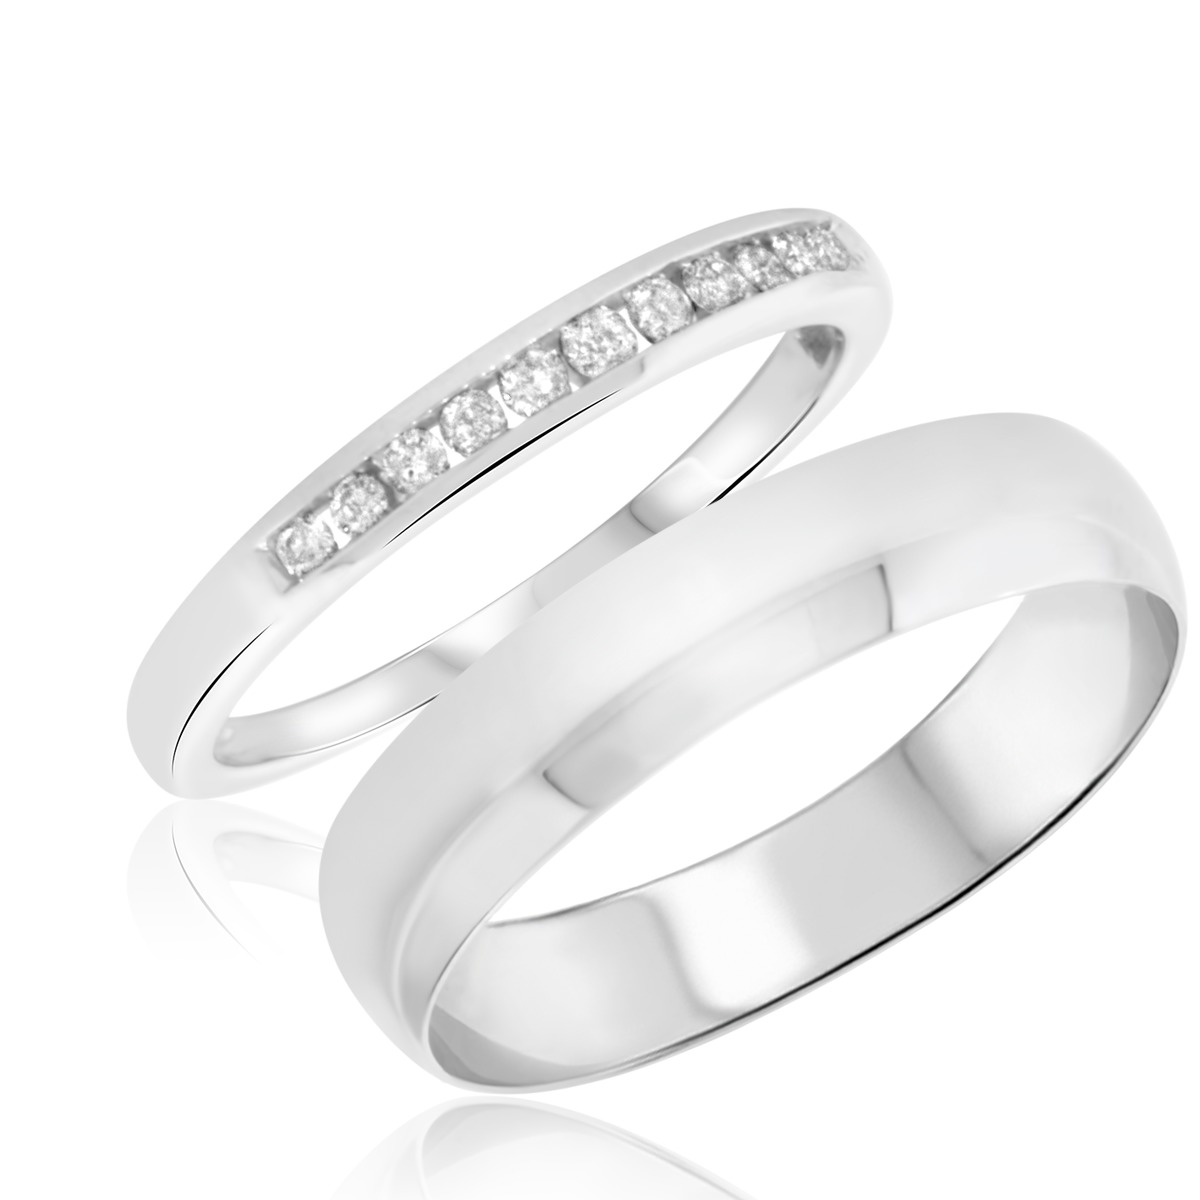 1/7 Carat T.W. Round Cut Diamond His and Hers Wedding Band Set 10K White Gold